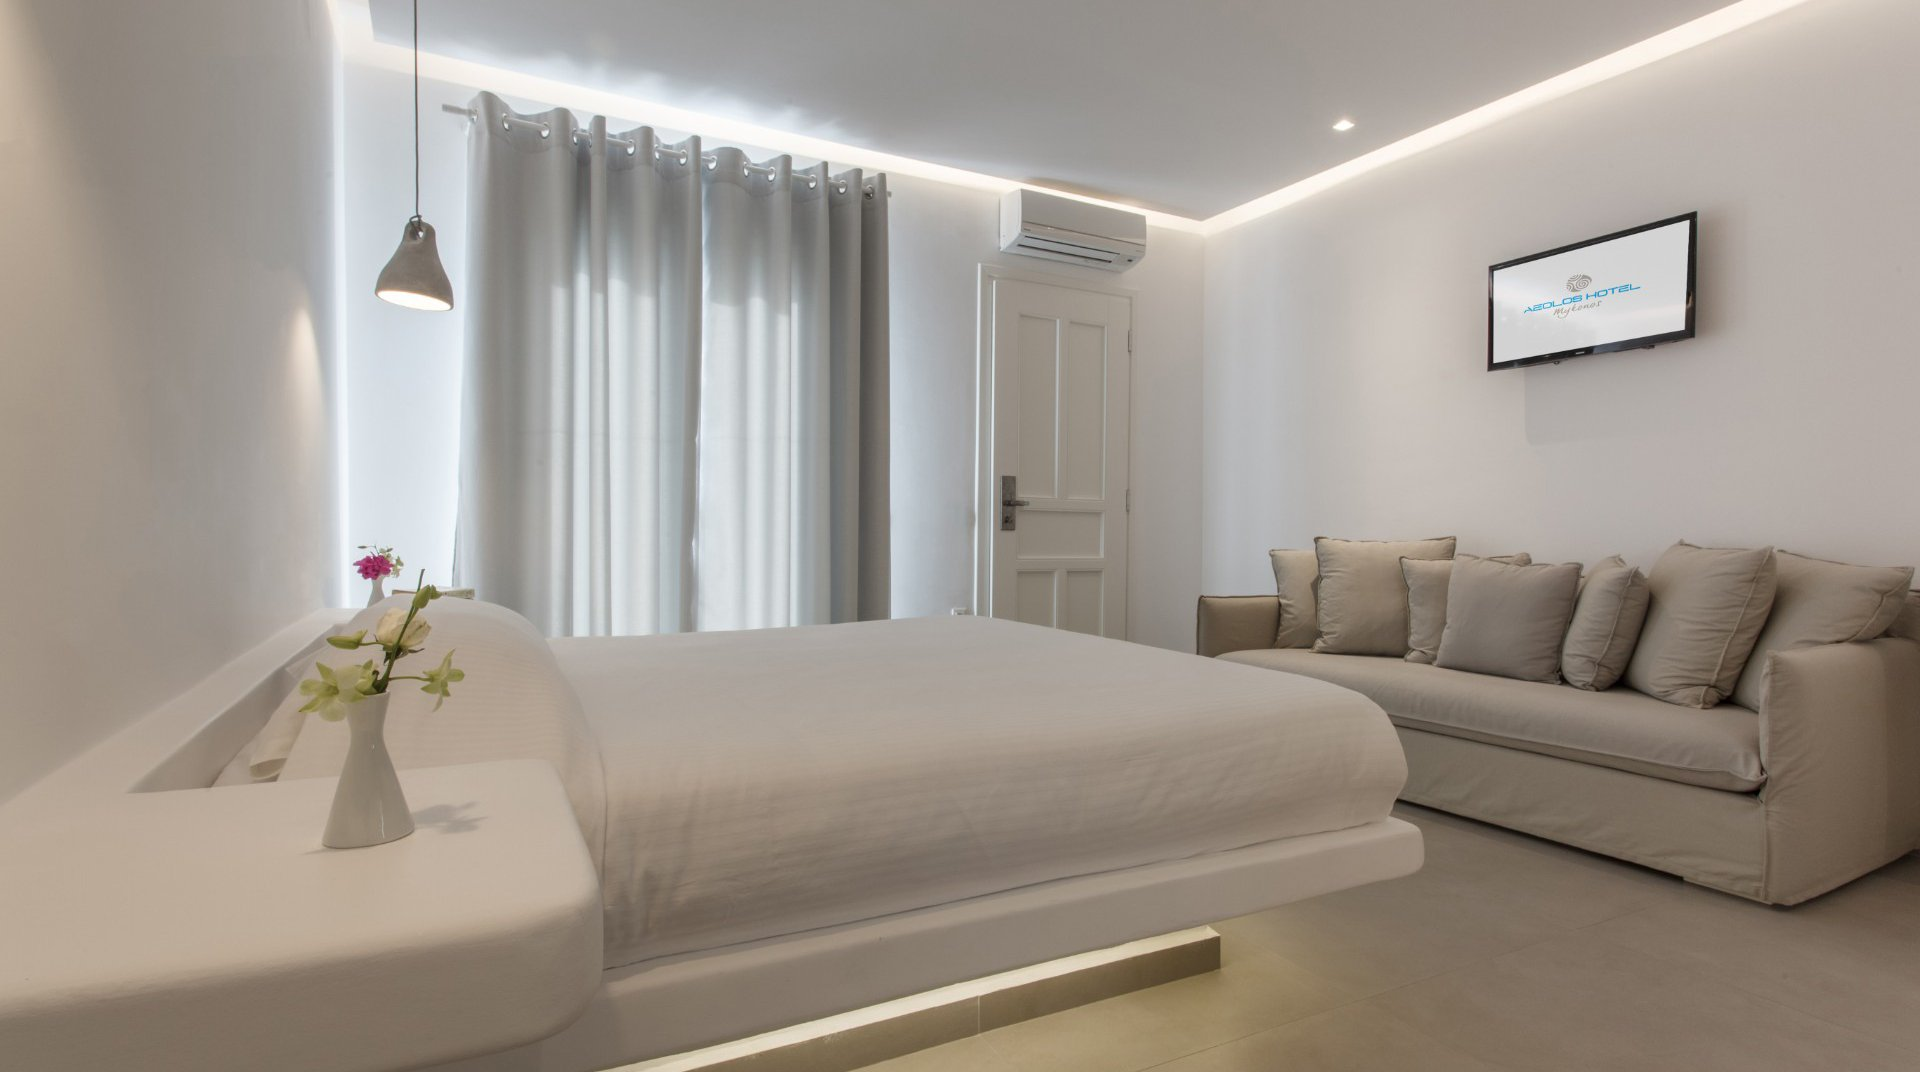 The interior of the suite with the bed,, the modern bedside tables, the sofa, the TV